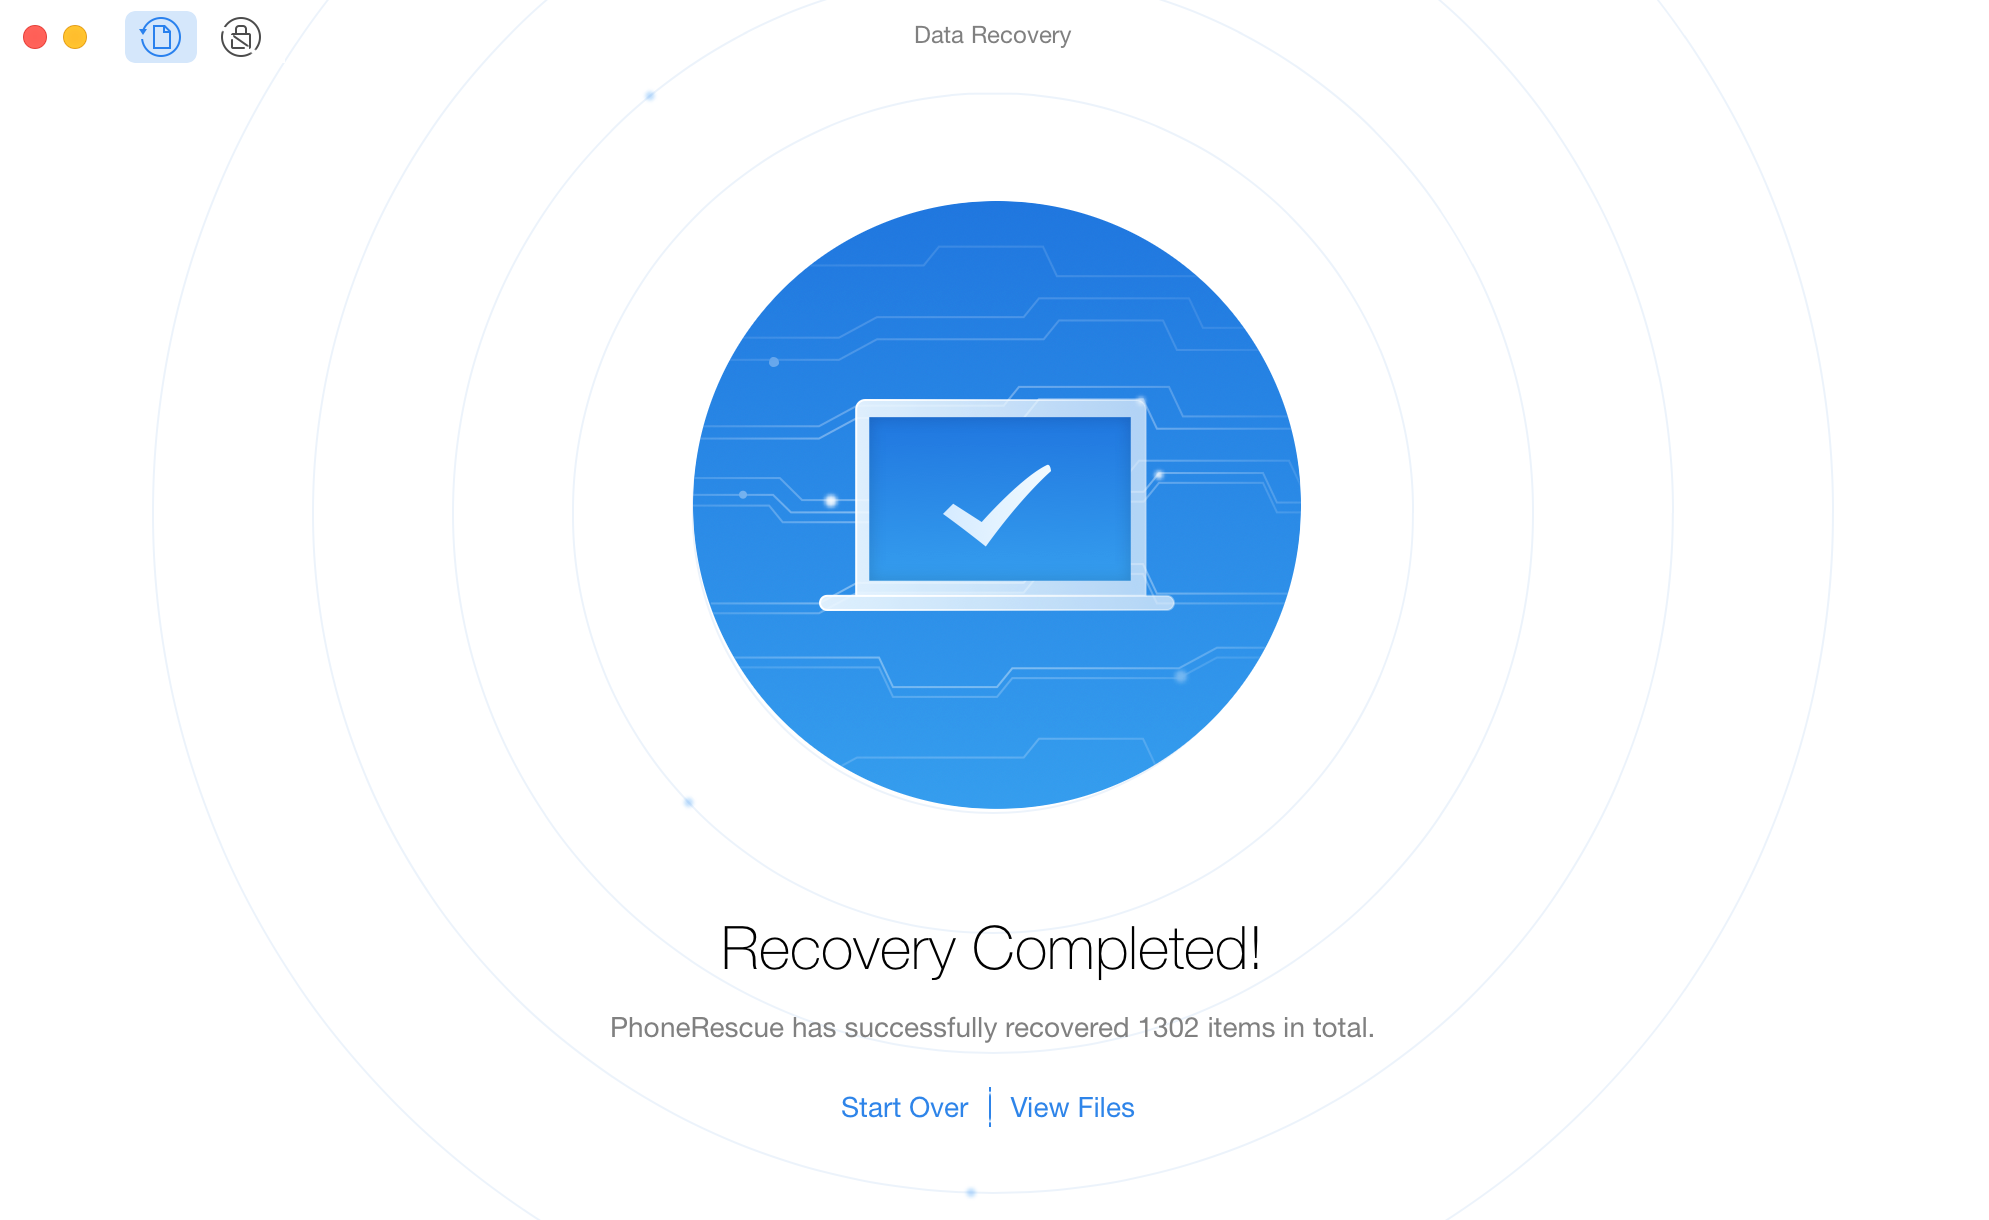 Files Successfully Recovered through PhoneRescue for Android